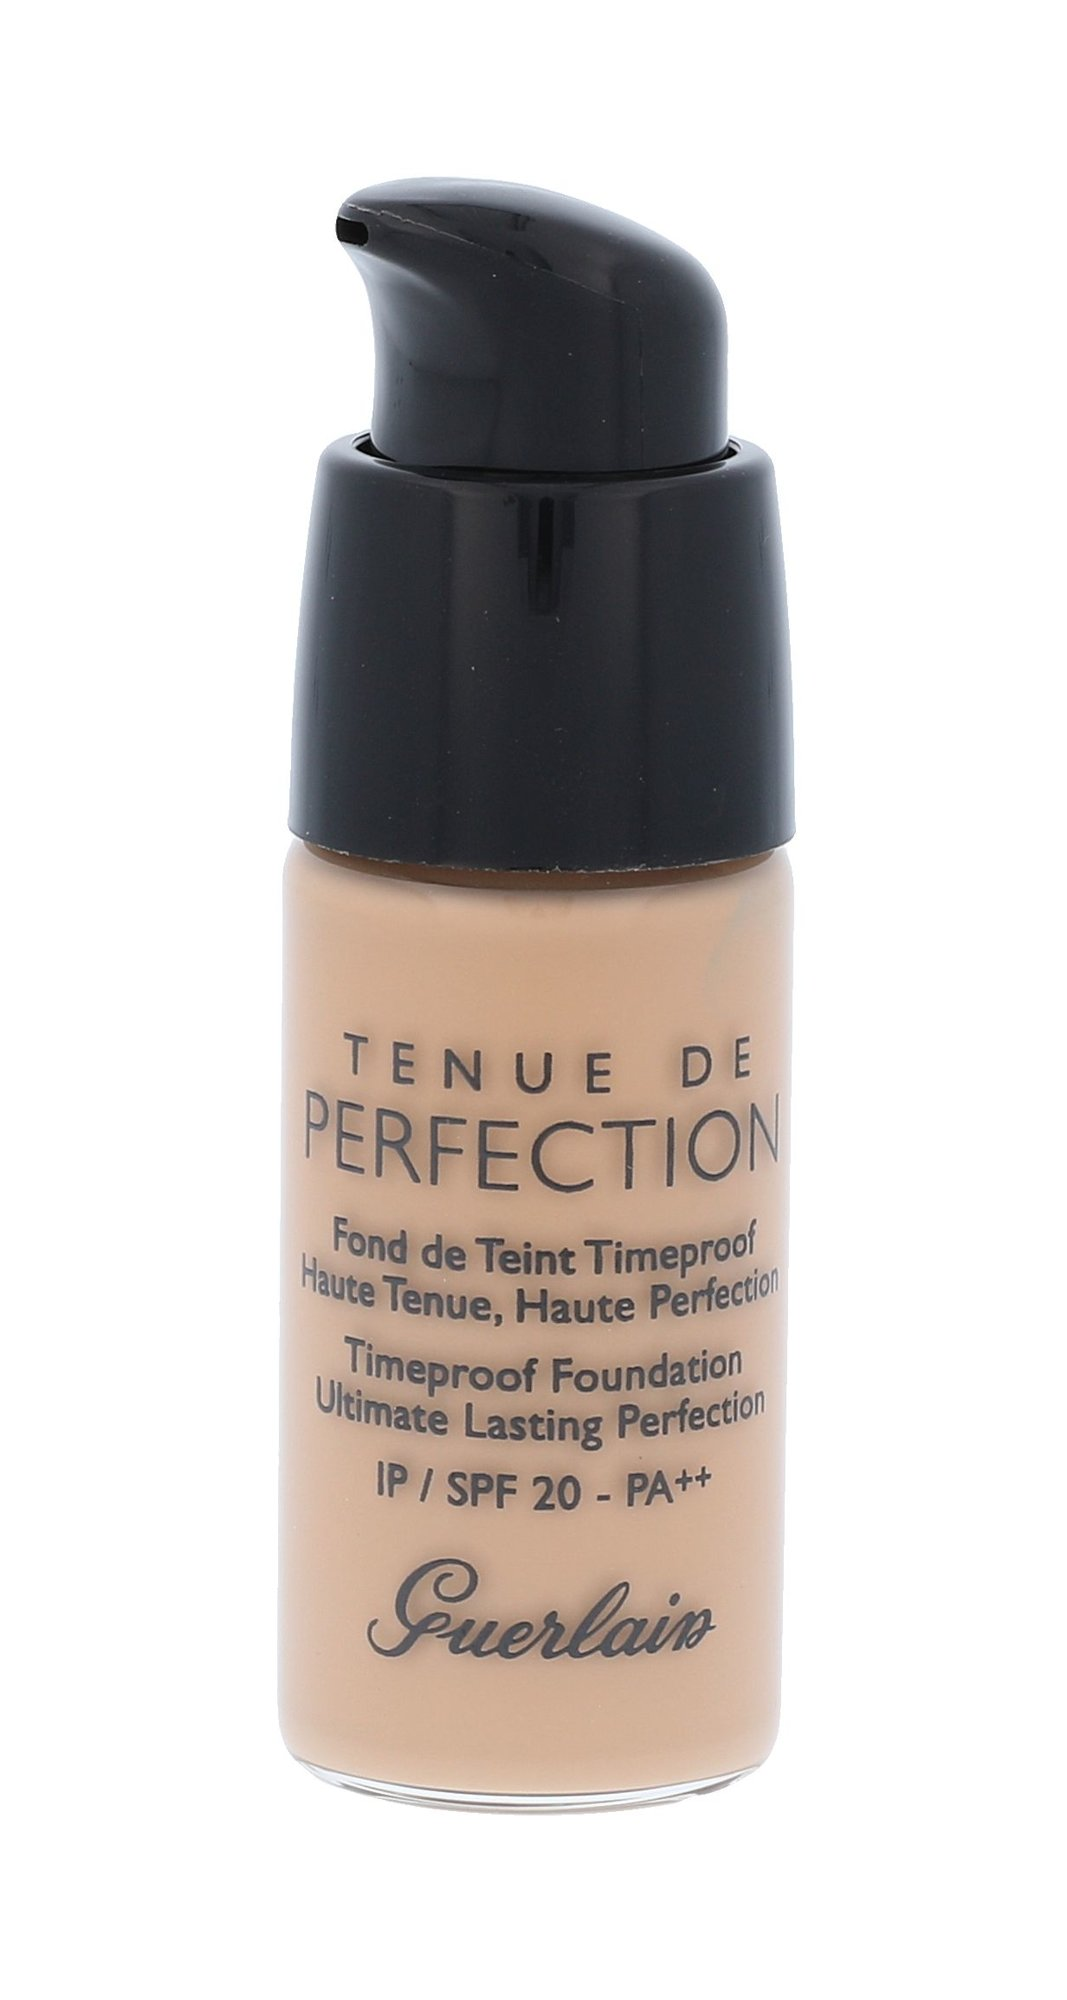 Guerlain Tenue De Perfection Cosmetic 15ml 03 Beige Naturel